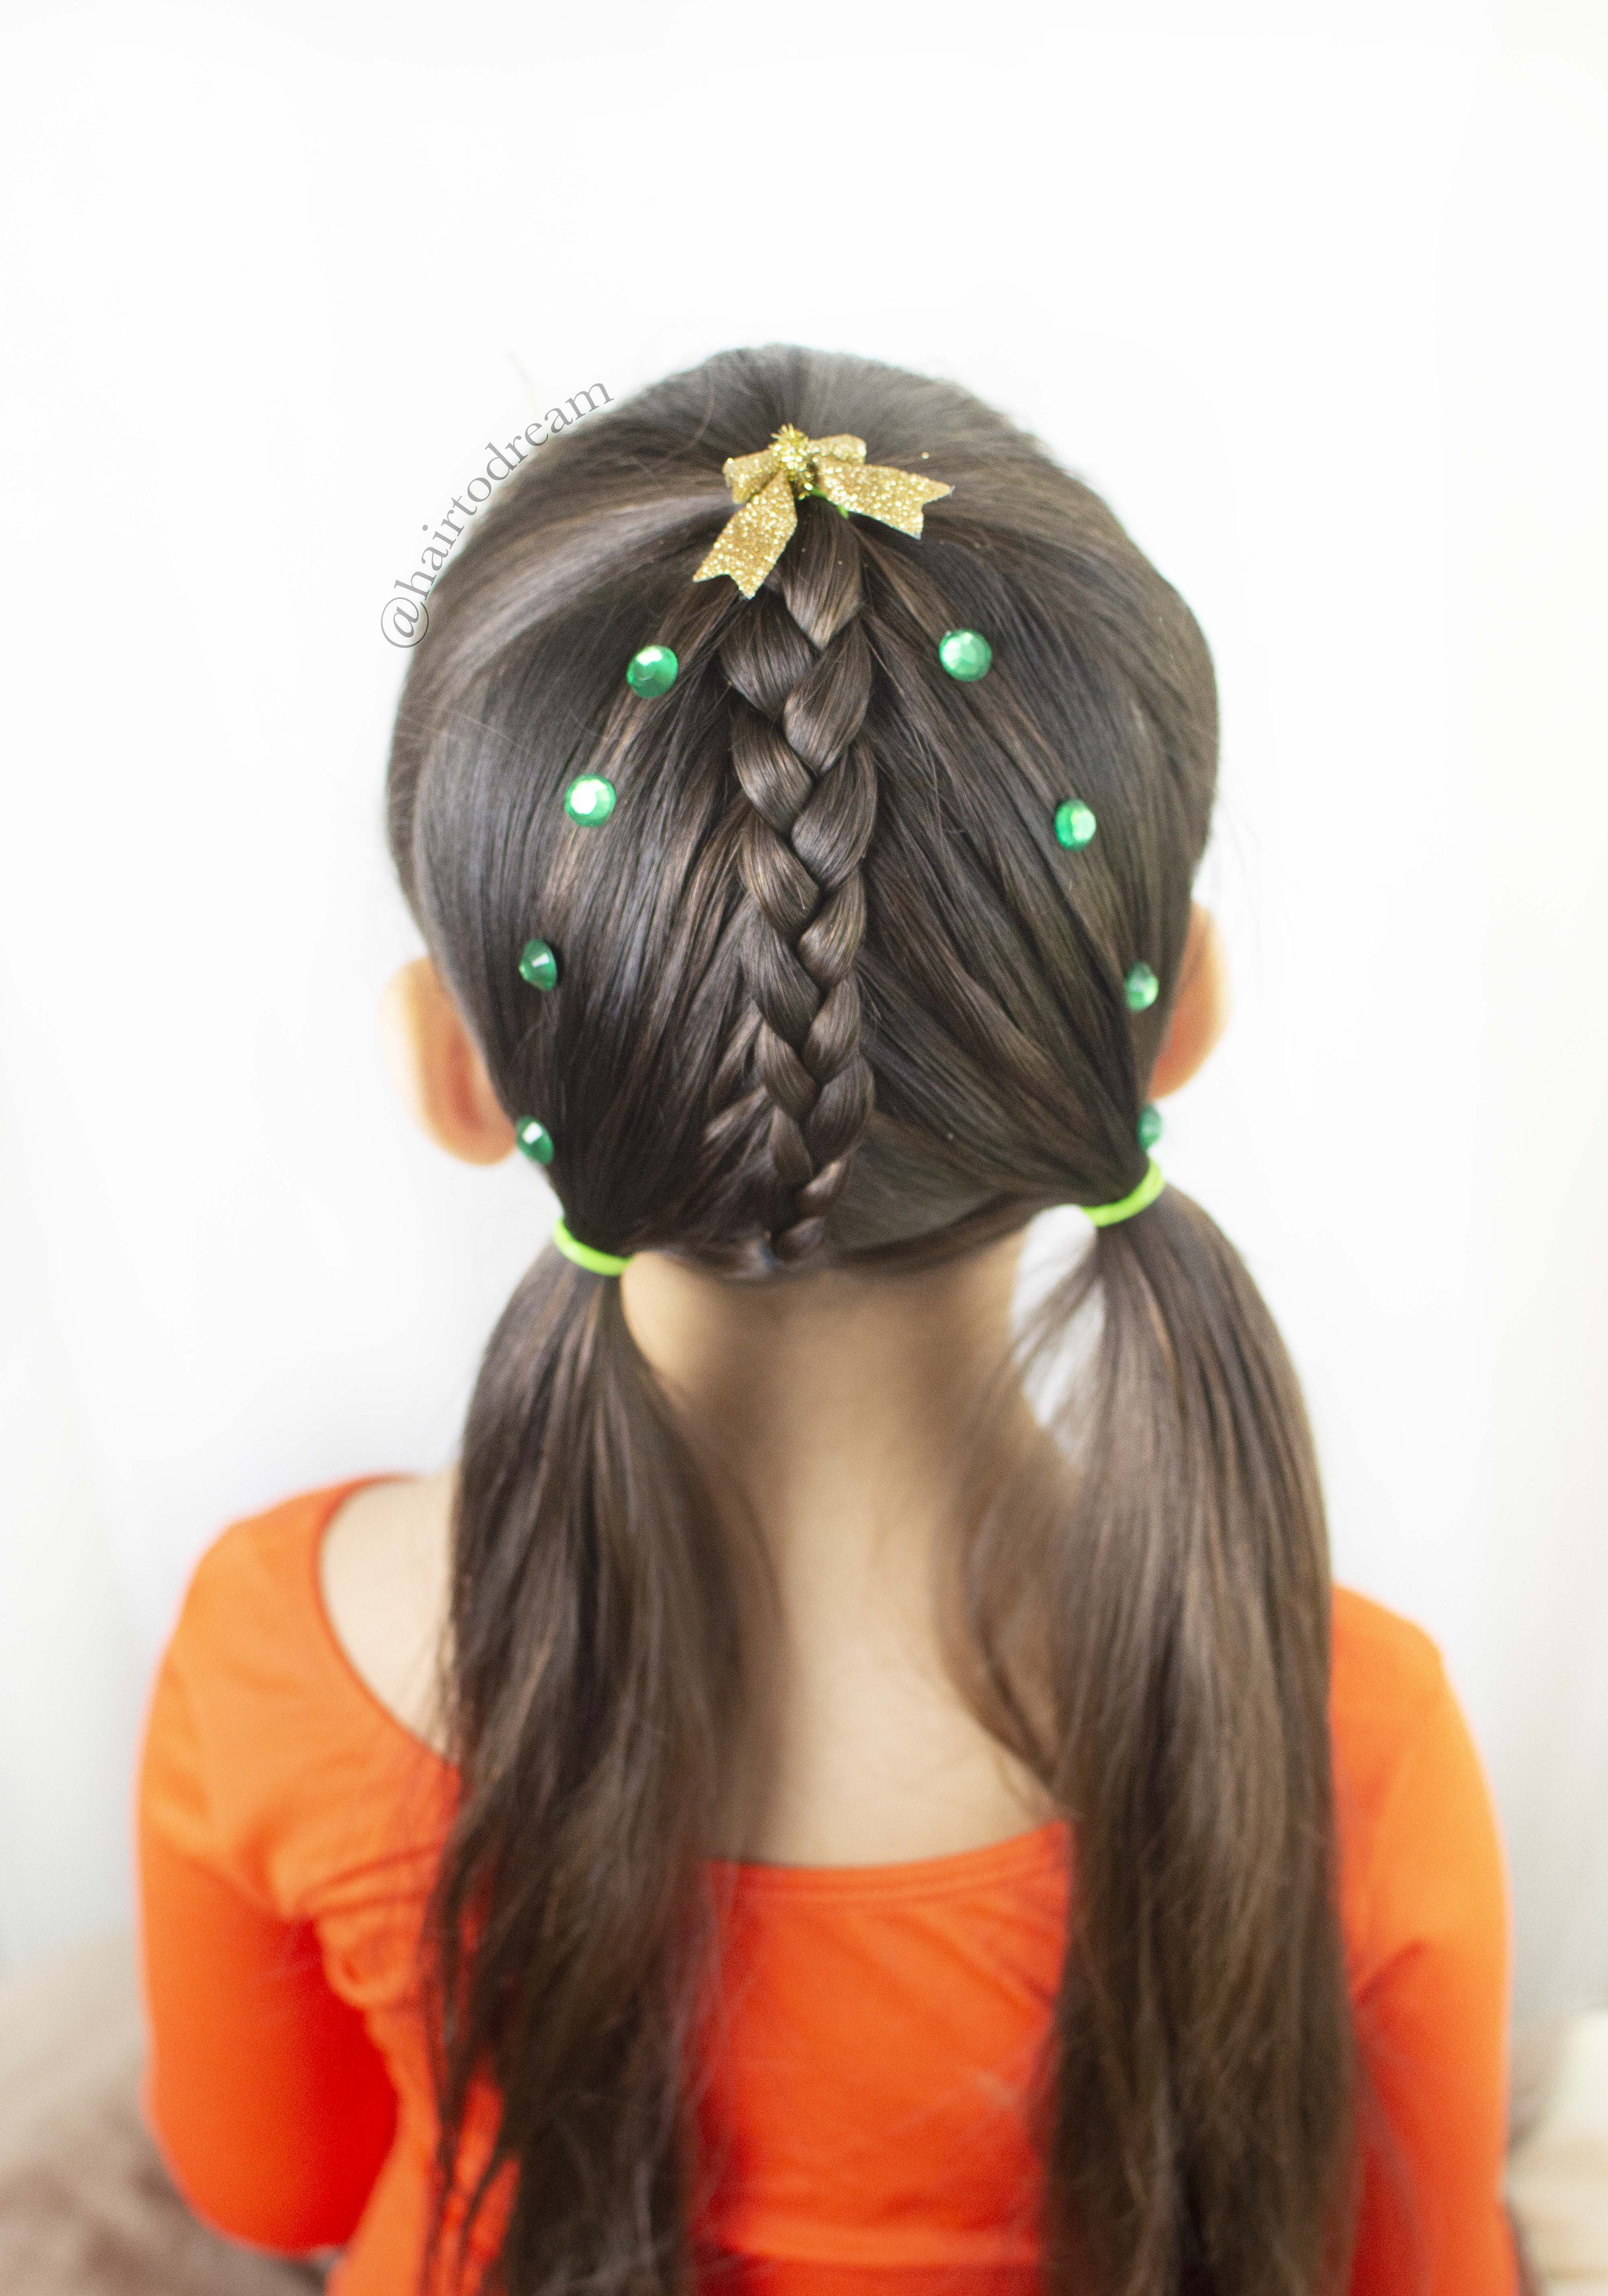 Cute Christmas Hairstyle For Girls Short Hair Styles Easy Girl Hairstyles Hair Styles